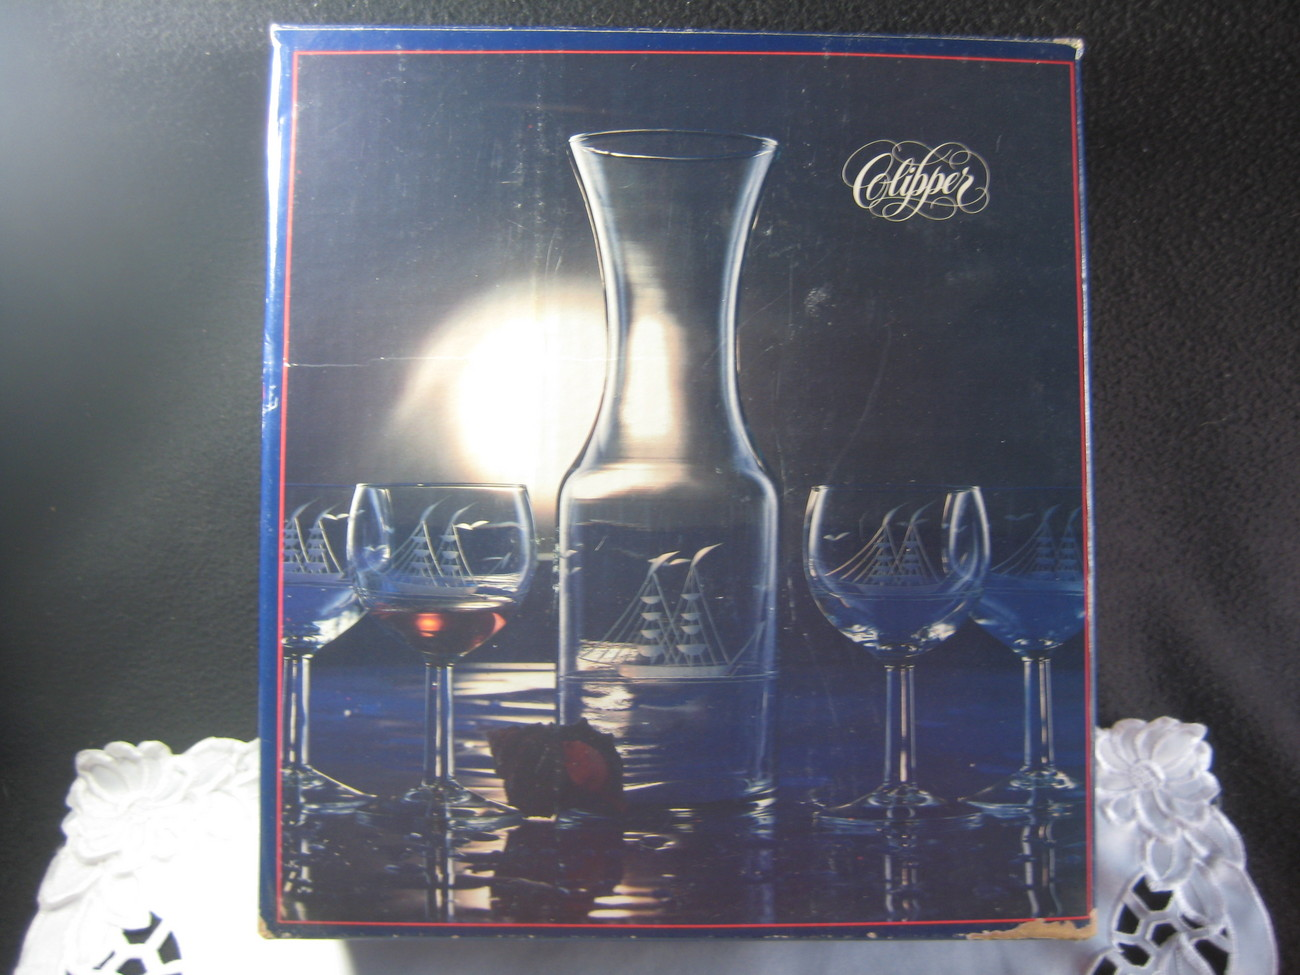 Clipper Carafe & Wine Glass set In Box